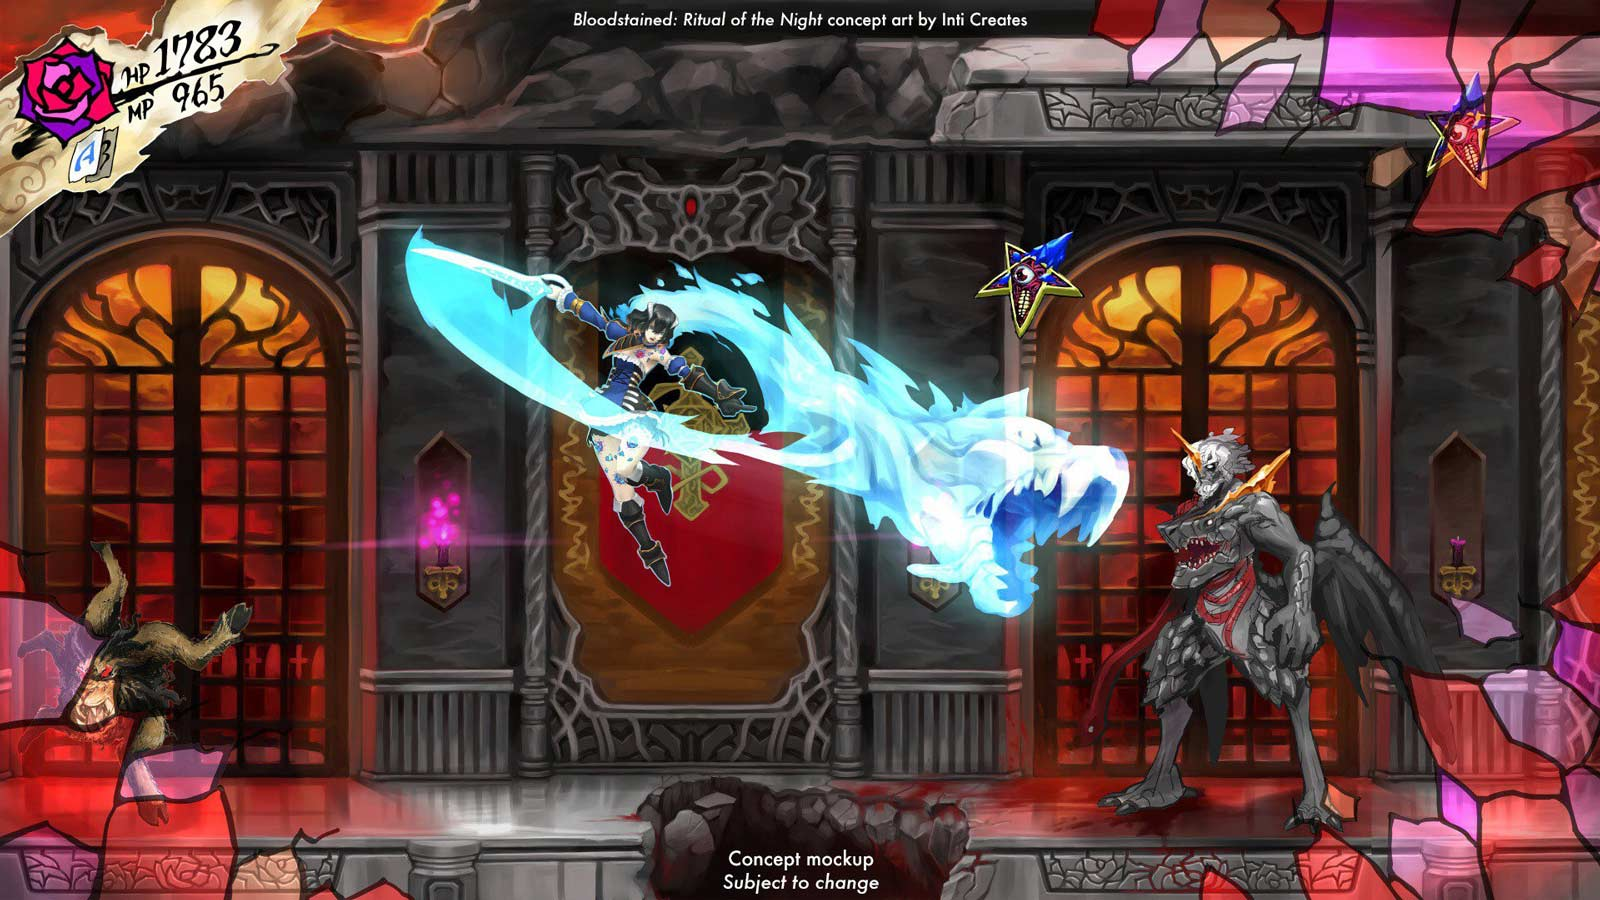 Une ébauche du jeu Bloodstained : Ritual of the Night.